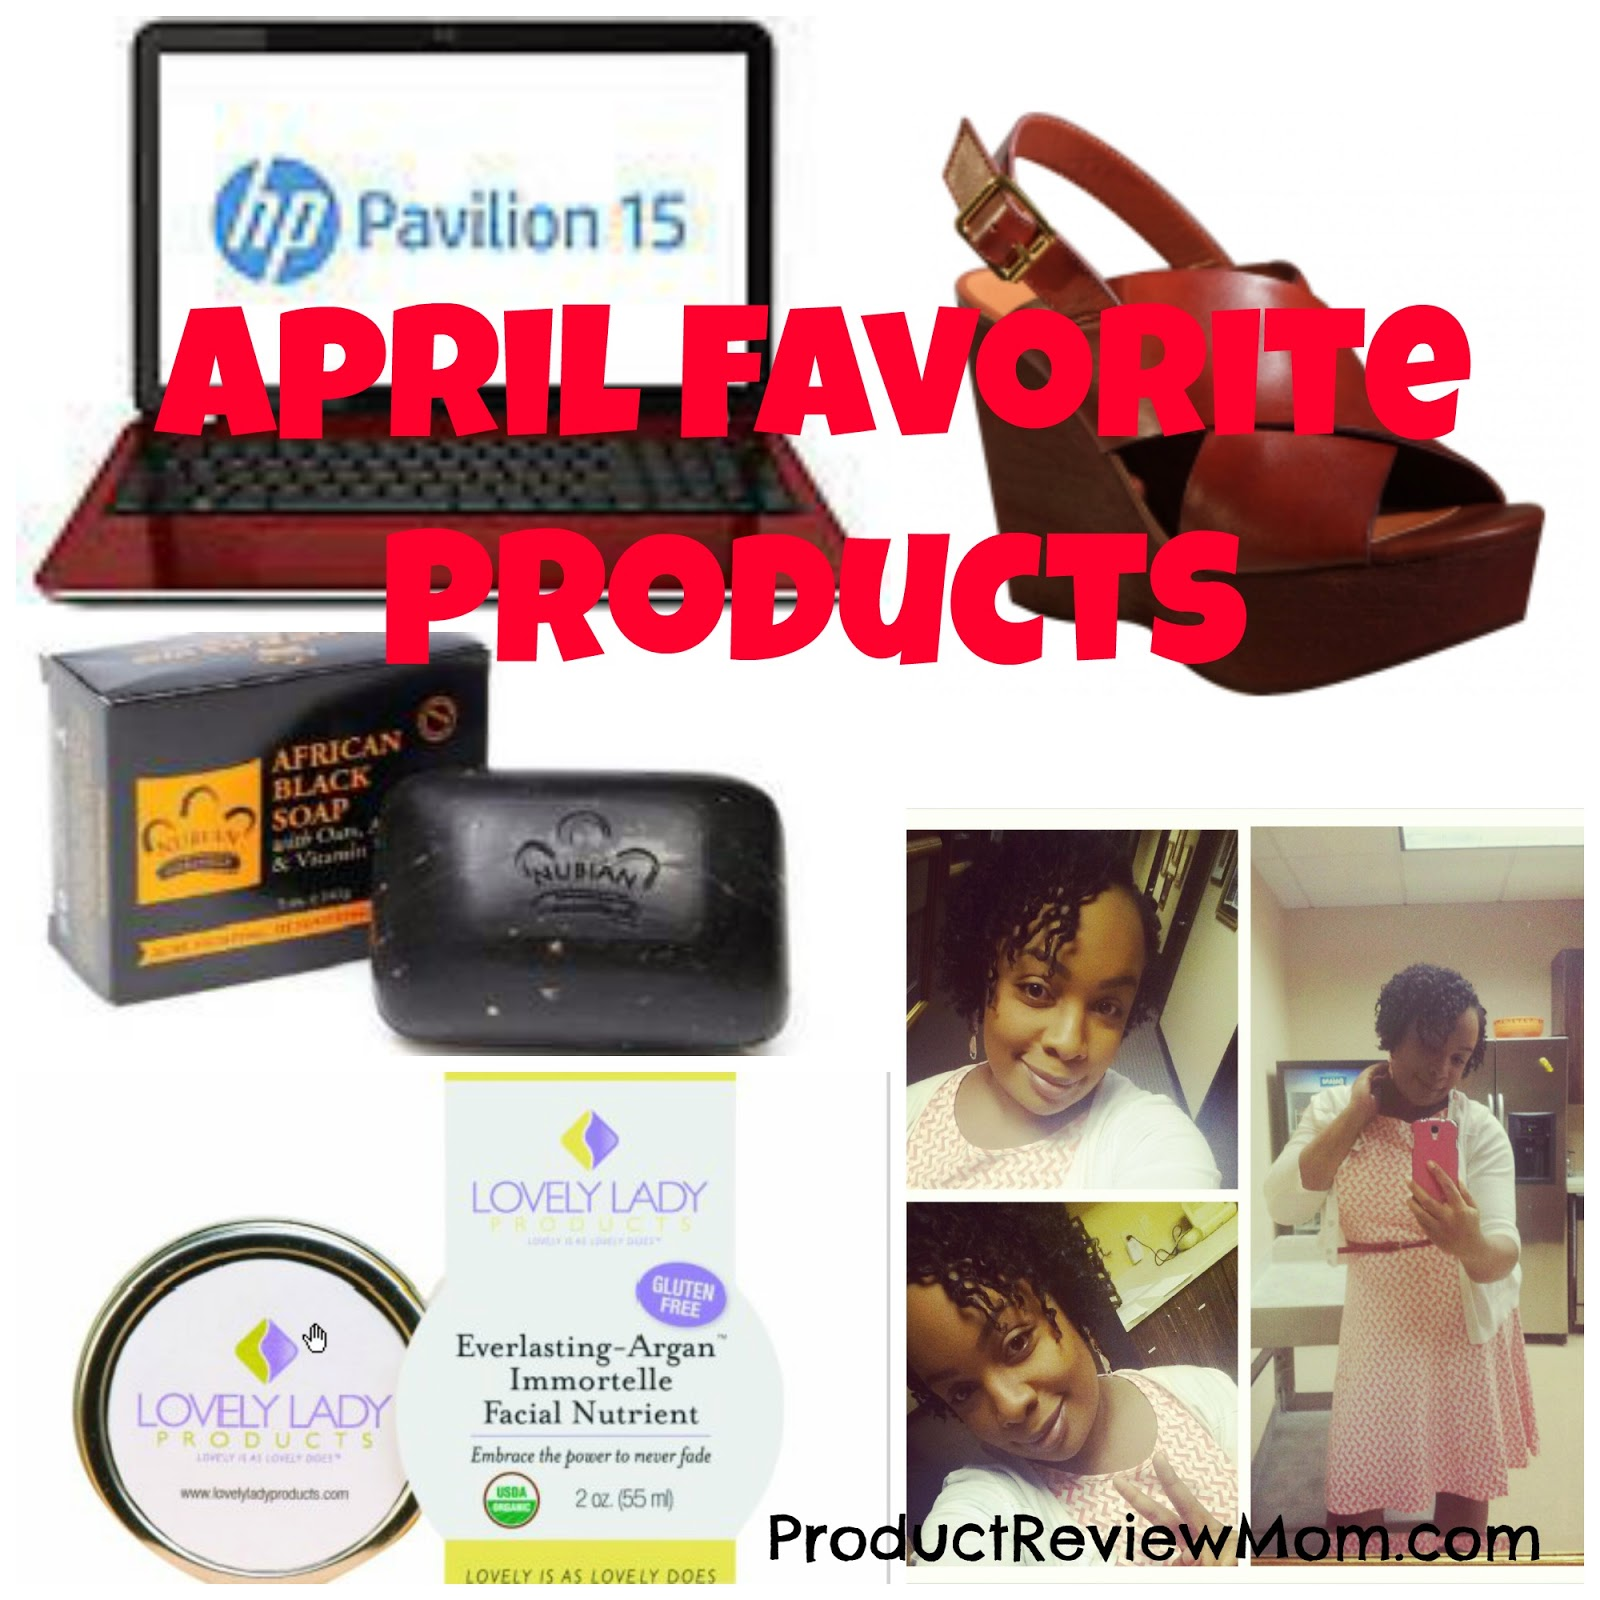 April Favorite Products 2014 via ProductReviewMom.com